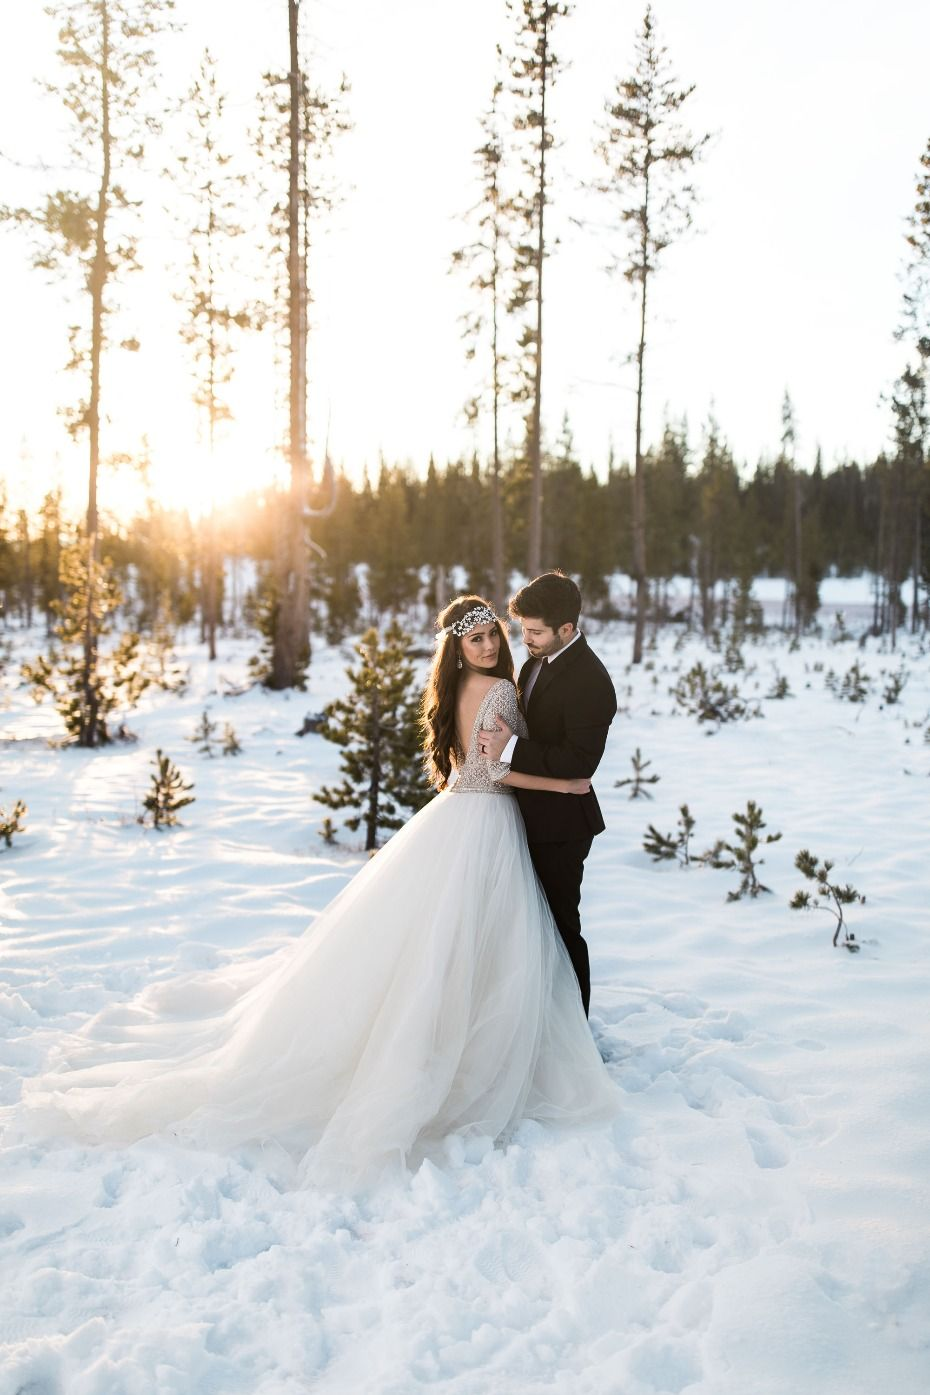 Allen By Sottero And Midgley Wedding Dresses Winter Wedding Photos Snow Wedding Winter Wedding